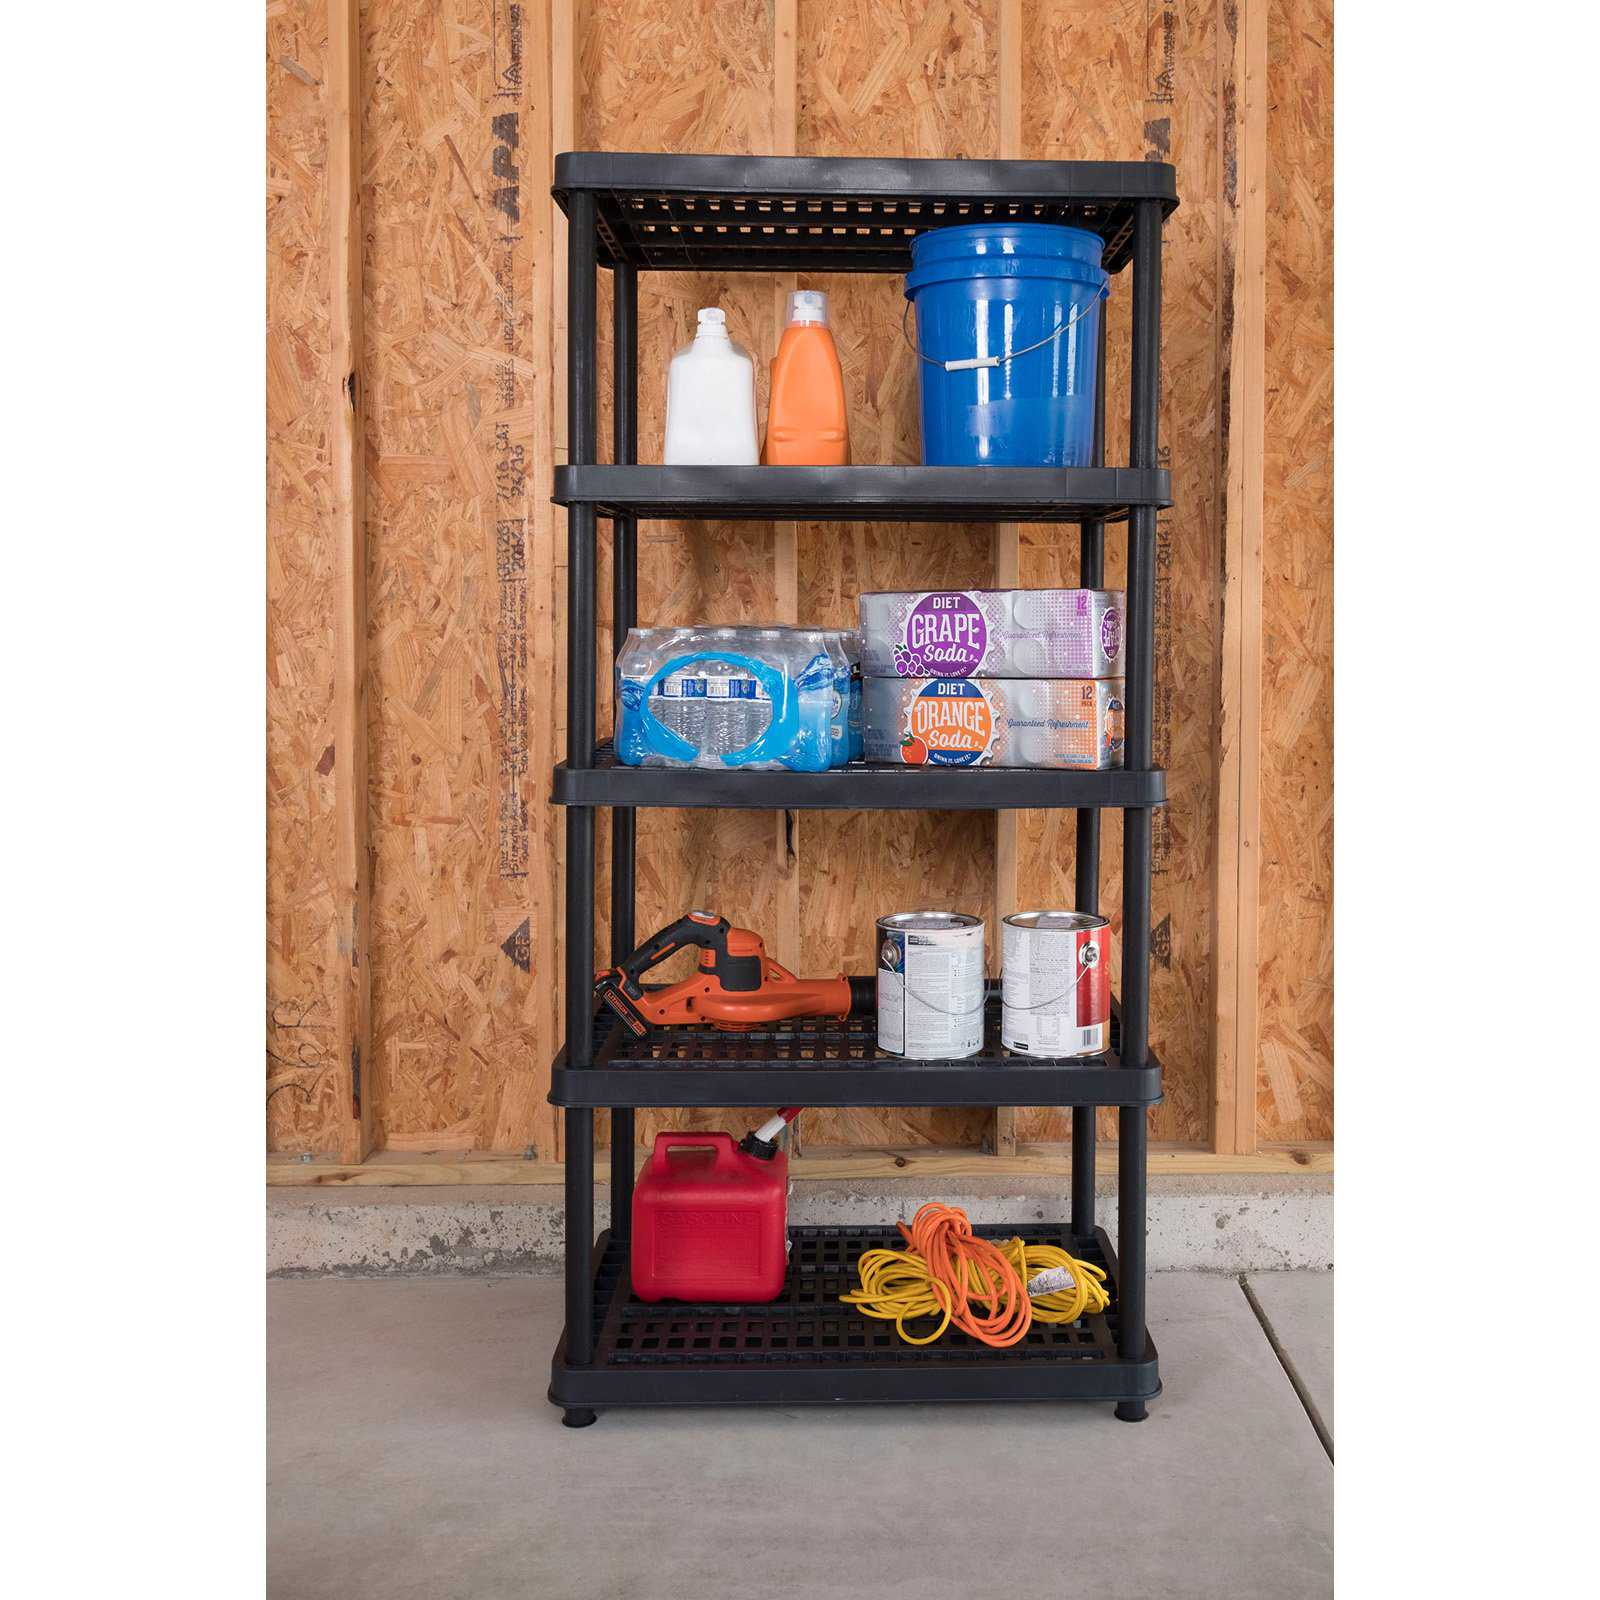 Keter 24-in. 5-Tier Black Ventilated Shelving Unit